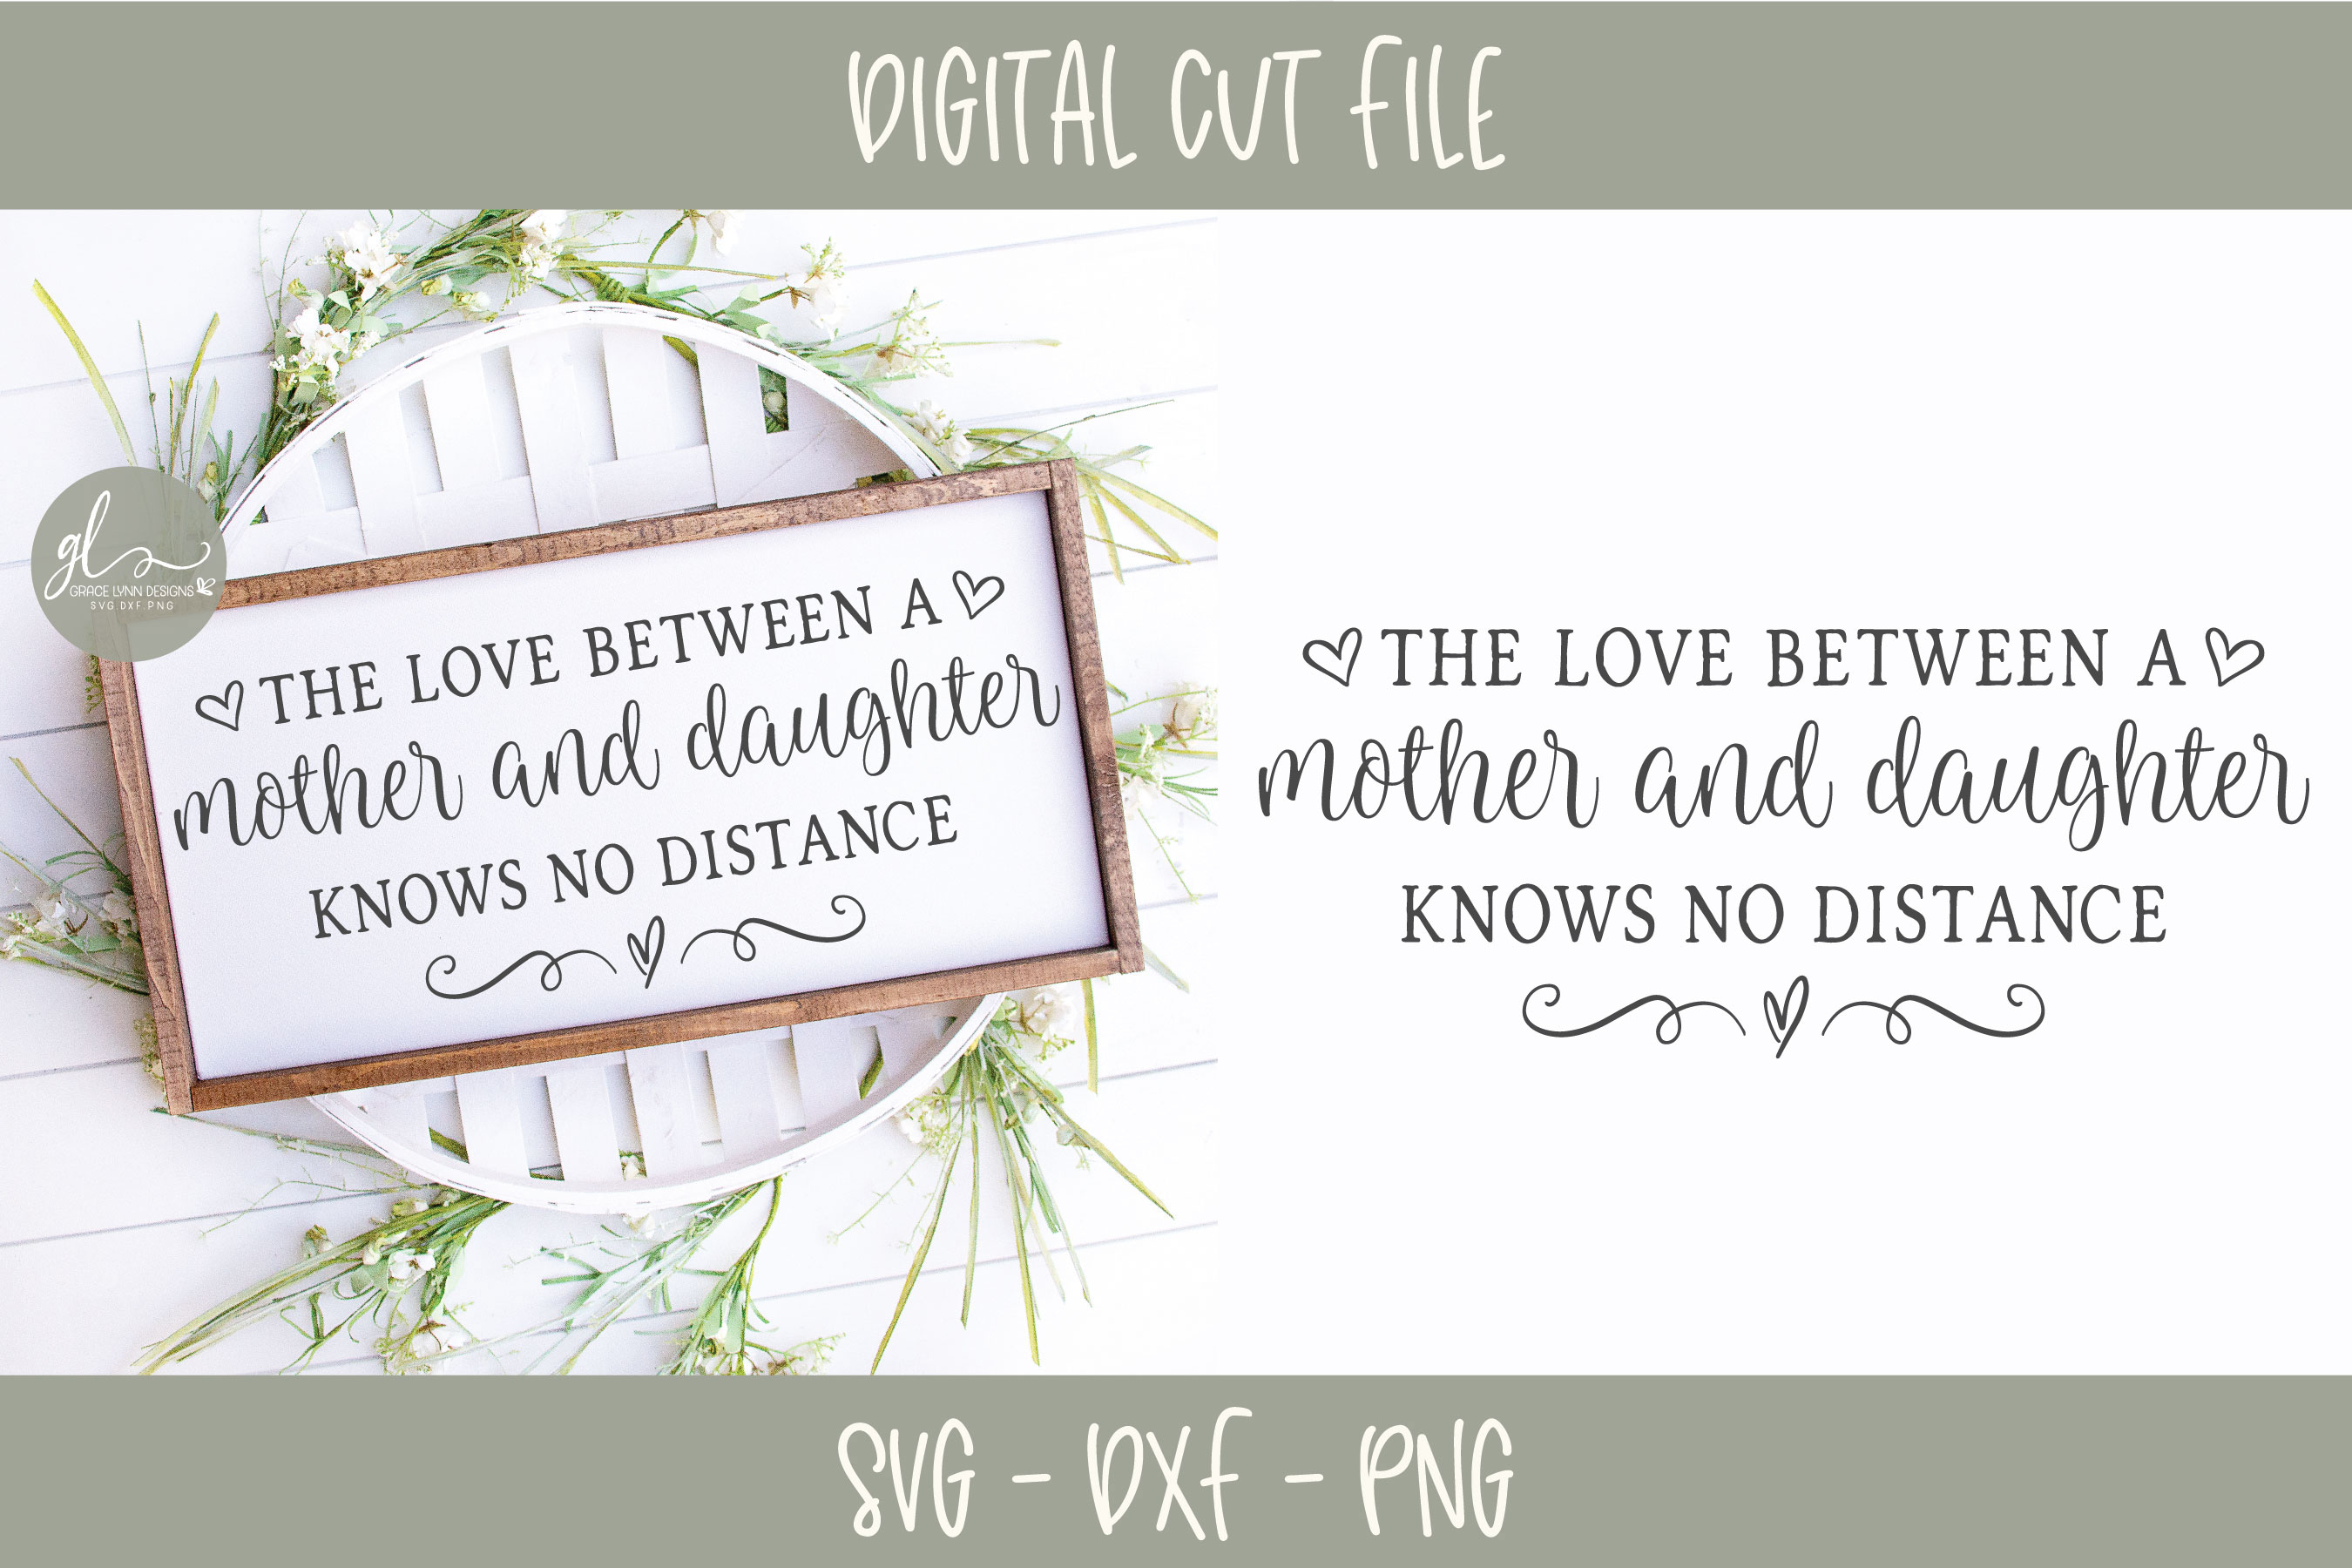 The Love Between A Mother And Daughter - SVG Cut File example image 1